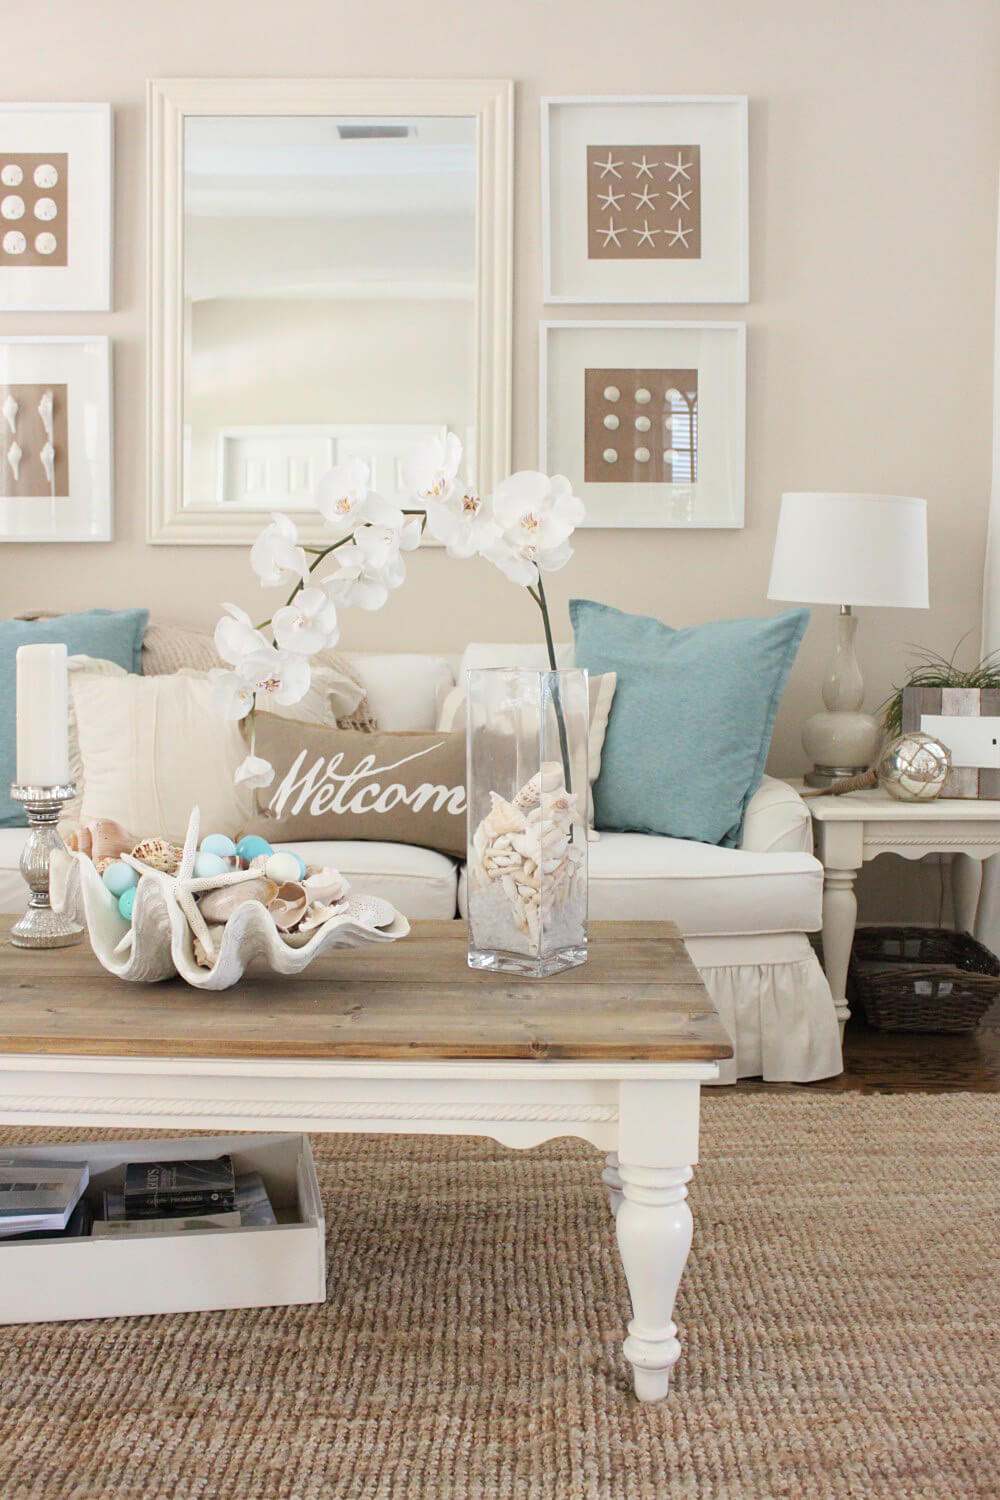 Welcoming Beach Motif for Your Living Space